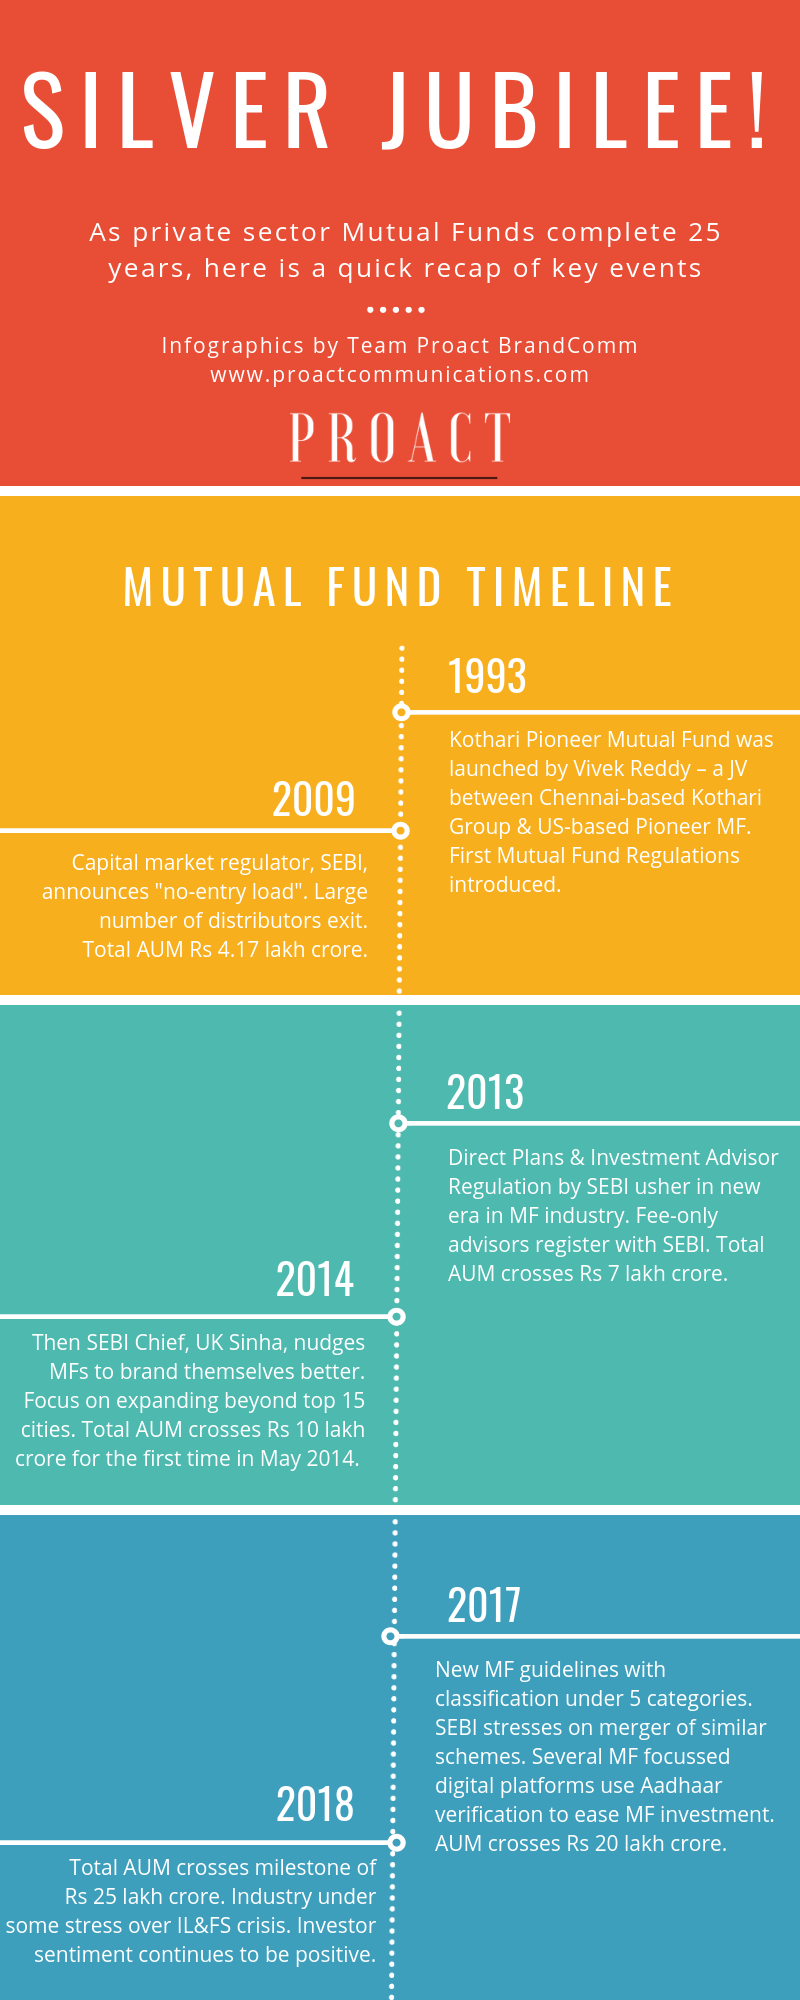 proactcommunications.com MUTUAL FUND_25 YEARS_AN INFOGRAPHIC BY PROACT BRANDCOMM (1)